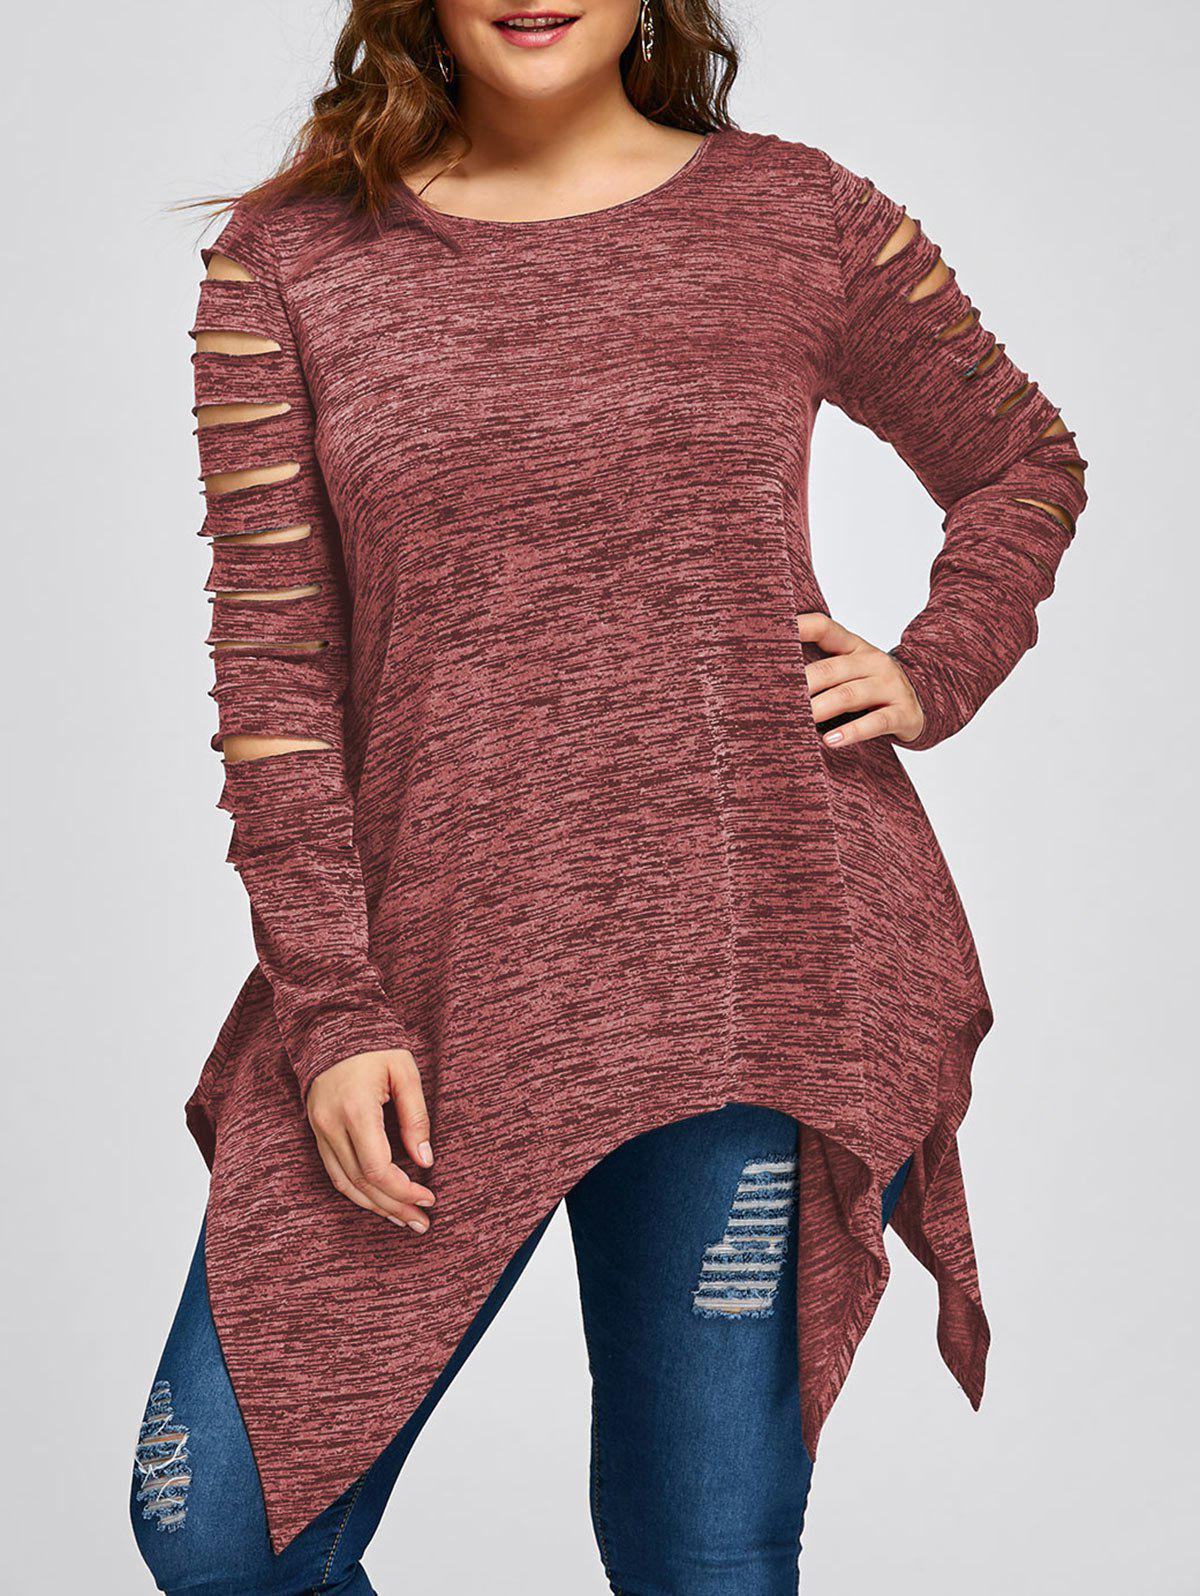 Plus Size Marled Ripped Sleeve Handkerchief Top iridescent sequin ripped marled knit jumper